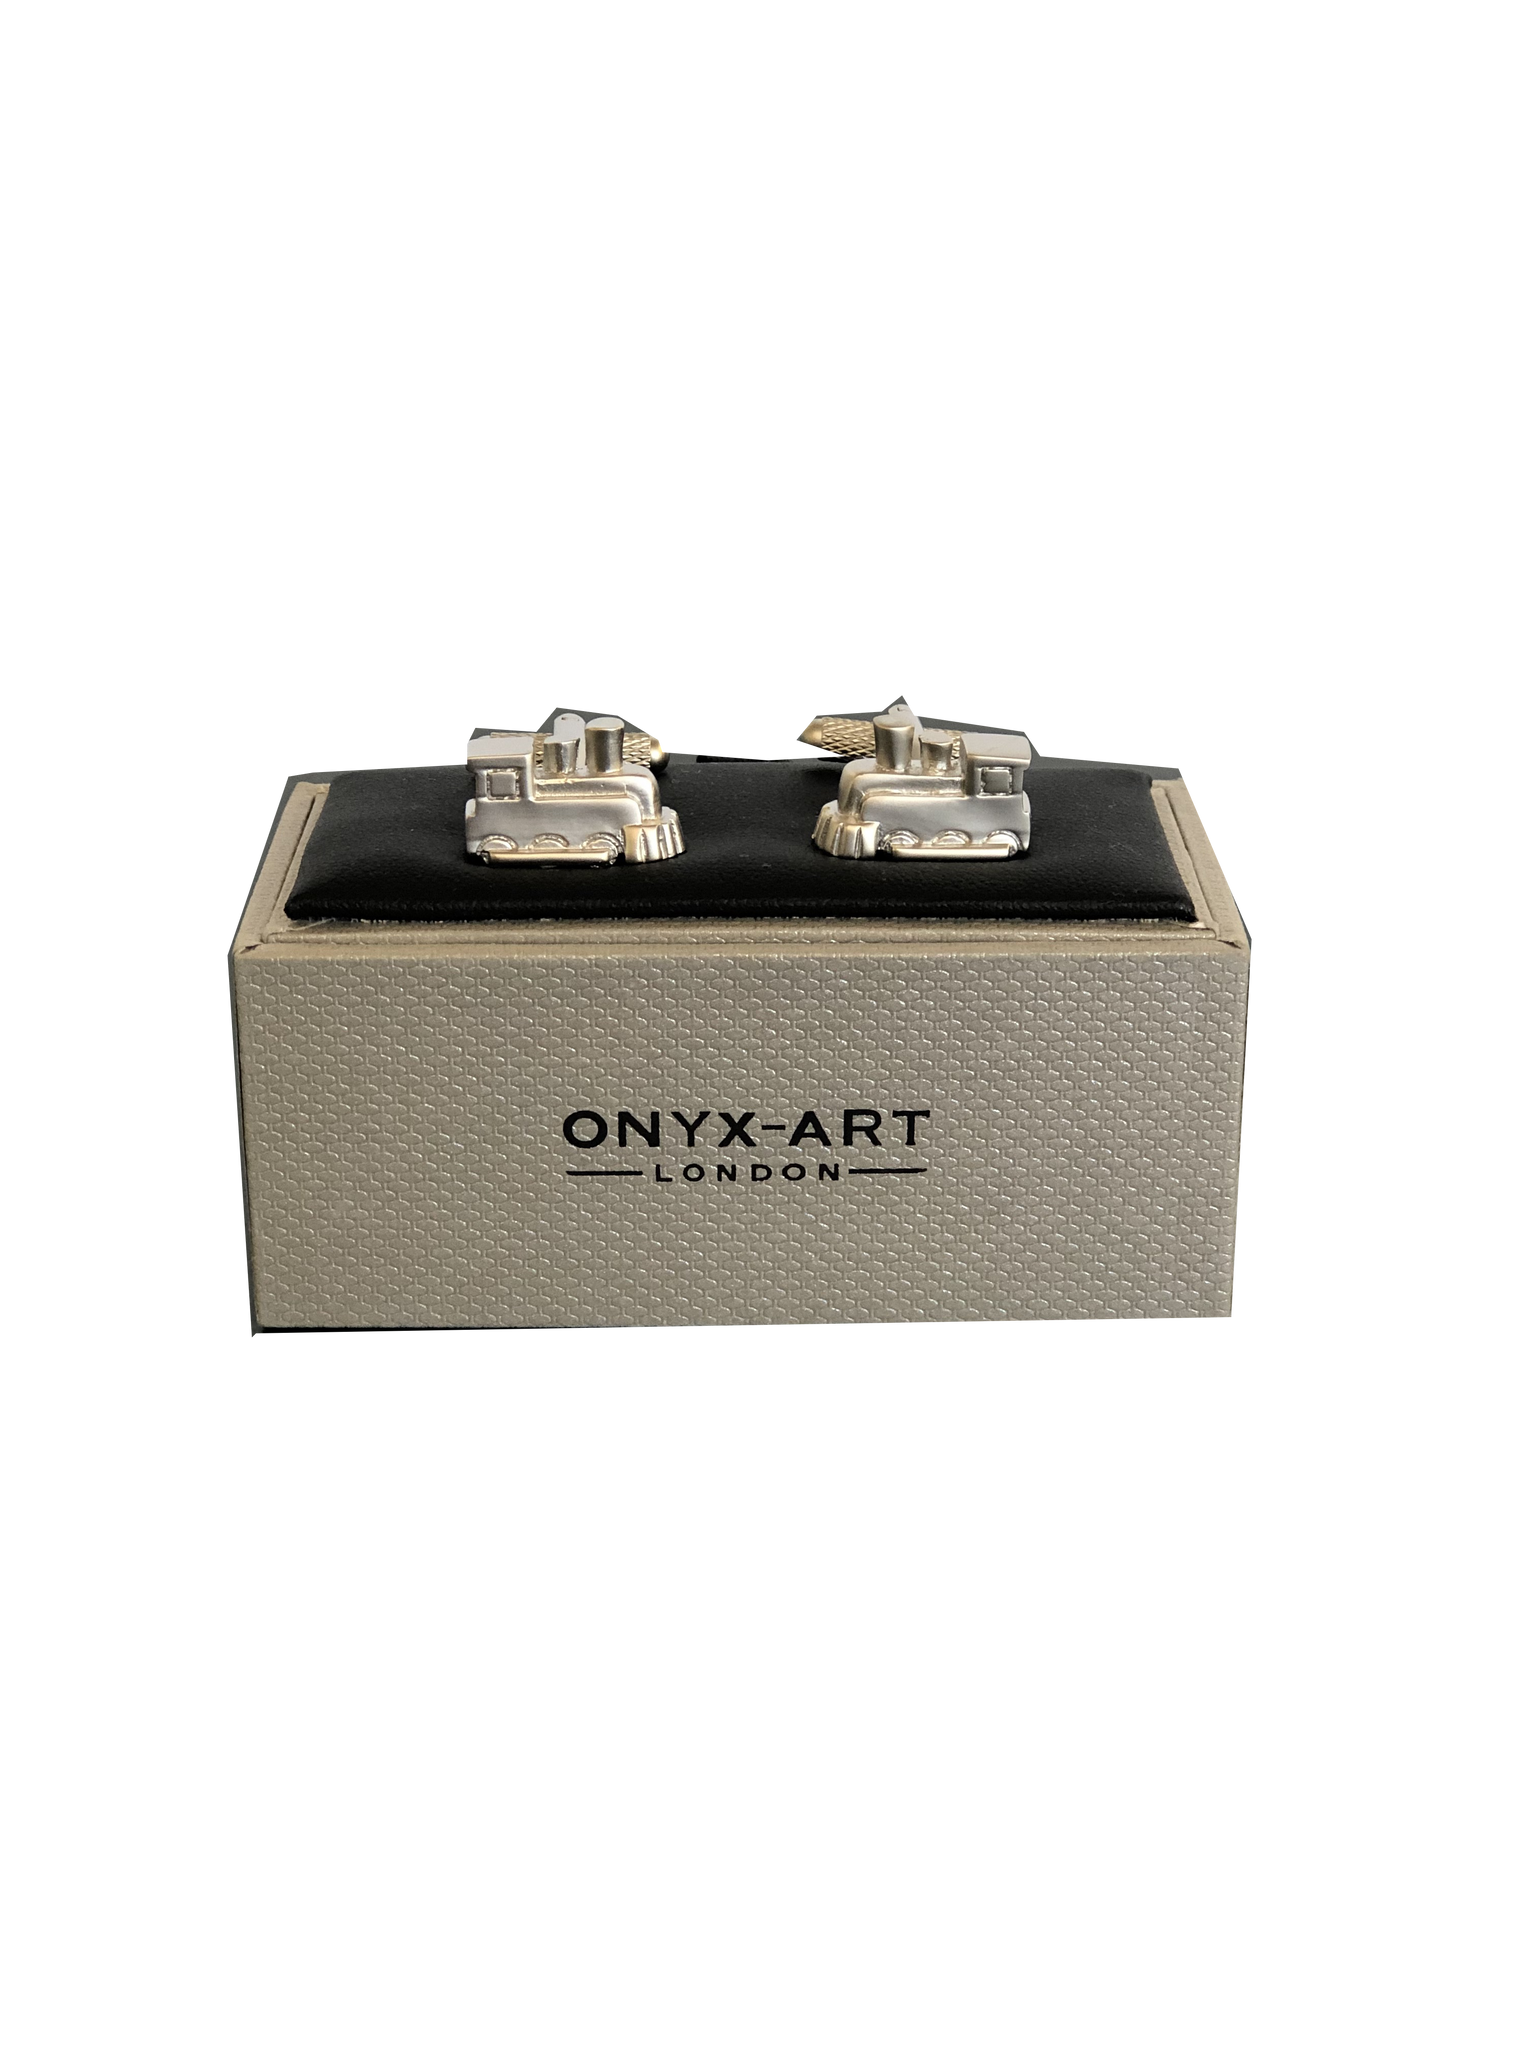 Onyx Art Steam Train Cufflinks in Presentation Gift Box